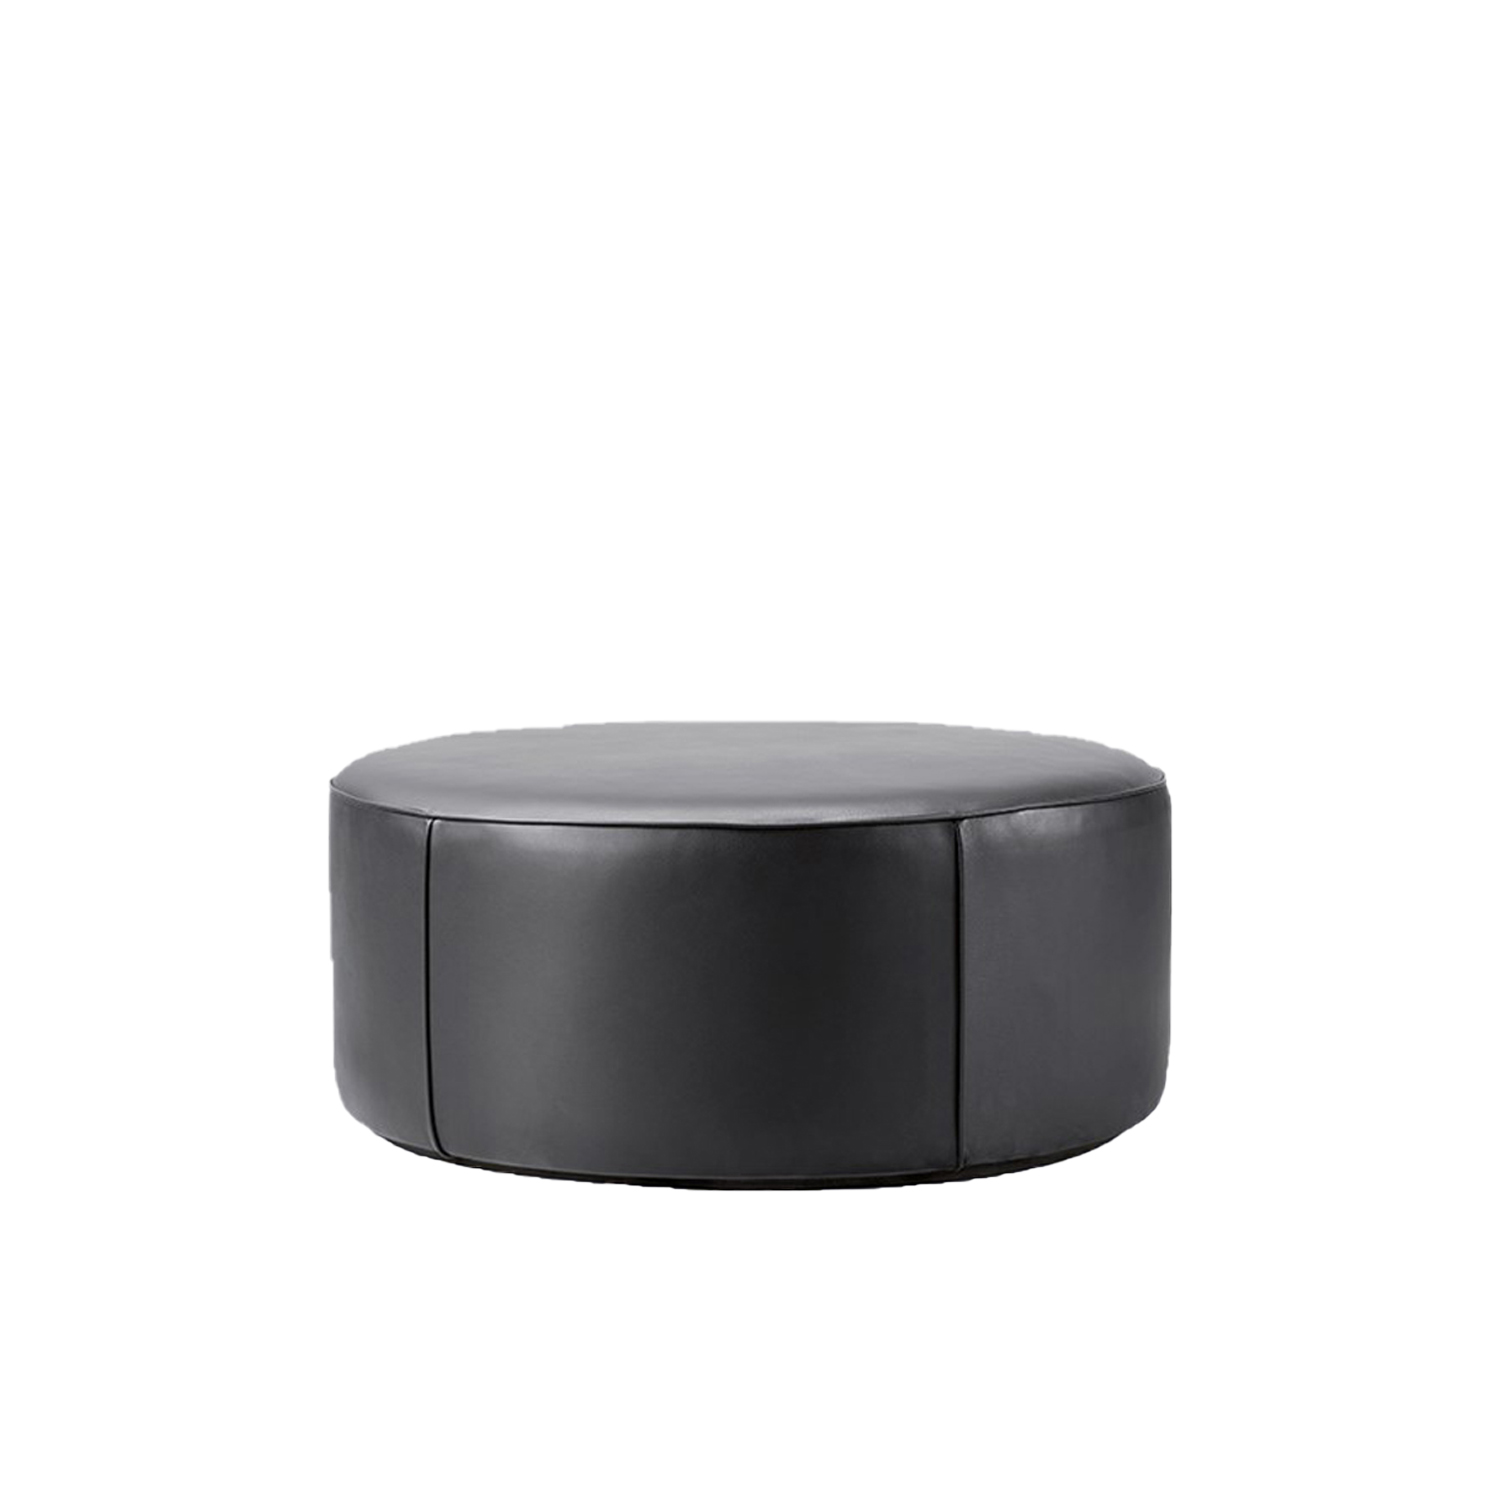 Mono Pouf Ø90  - Mono Pouf is a singular concept with a multitude of possibilities. Either as an appealing seating option, side table, footrest or decorative item, the cylindrical shape in different circumferences and heights makes Mono a welcome addition to any space. From retail and commercial venues to the hospitality and private sectors.  Fredericia introduces Complements – A new line of material-driven pieces conceived as collector's items to complement our portfolio.   Complements is a new collection of designs that join our main collection of furniture. A line of collectibles rooted in our passion for materiality comprised of functional pieces with aesthetic qualities that are equally appealing as decorative elements. From objects and small functional furniture to hidden gems from our archives with a renewed relevance.   With Complements, we expand on our expertise with materiality to encompass a range of accessories and furnishings that - together with our line of furniture - create a look and feel for an entire interior or concept.   Drawing on our legacy of working with wood and leather, we've explored other materials with textures, colours and compositions that bring an extra dimension to the atmosphere. The result is a celebration of materiality in well-considered concepts that are refined, authentic, inviting and crafted to last.   We're always open to designers, where we feel a strong connection with their work and a mutual mindset. For Complements, we've engaged with the next wave of new talent in Denmark and abroad. Both new and established names, who share our affinity for honest materials and purposeful design.   Complements remains true to our design heritage at Fredericia while staying in tune with the world at large. Each piece is distinctive, yet they all reflect our pioneering spirit to create essentials with presence and permanence.   Collectibles to cherish now – and for generations to come. | Matter of Stuff